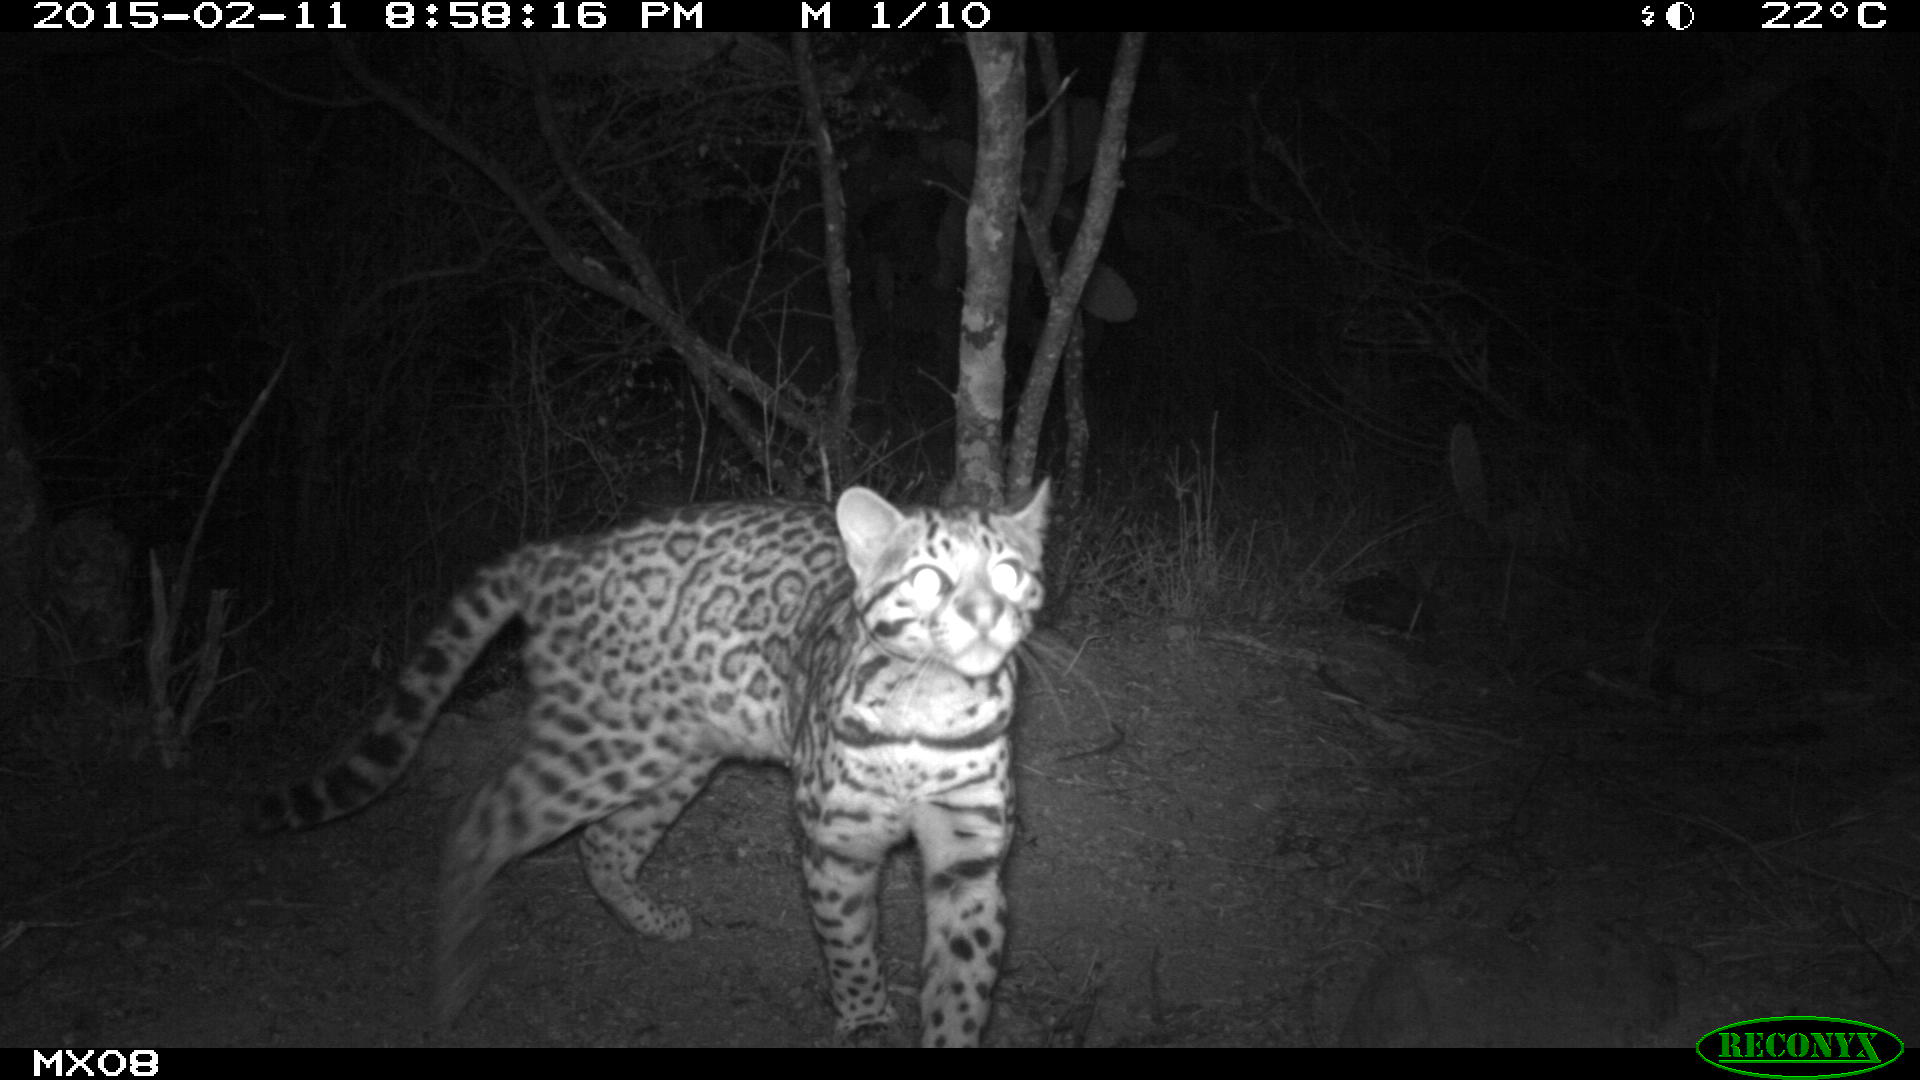 ocelot Camera Trap Photos from Mexico